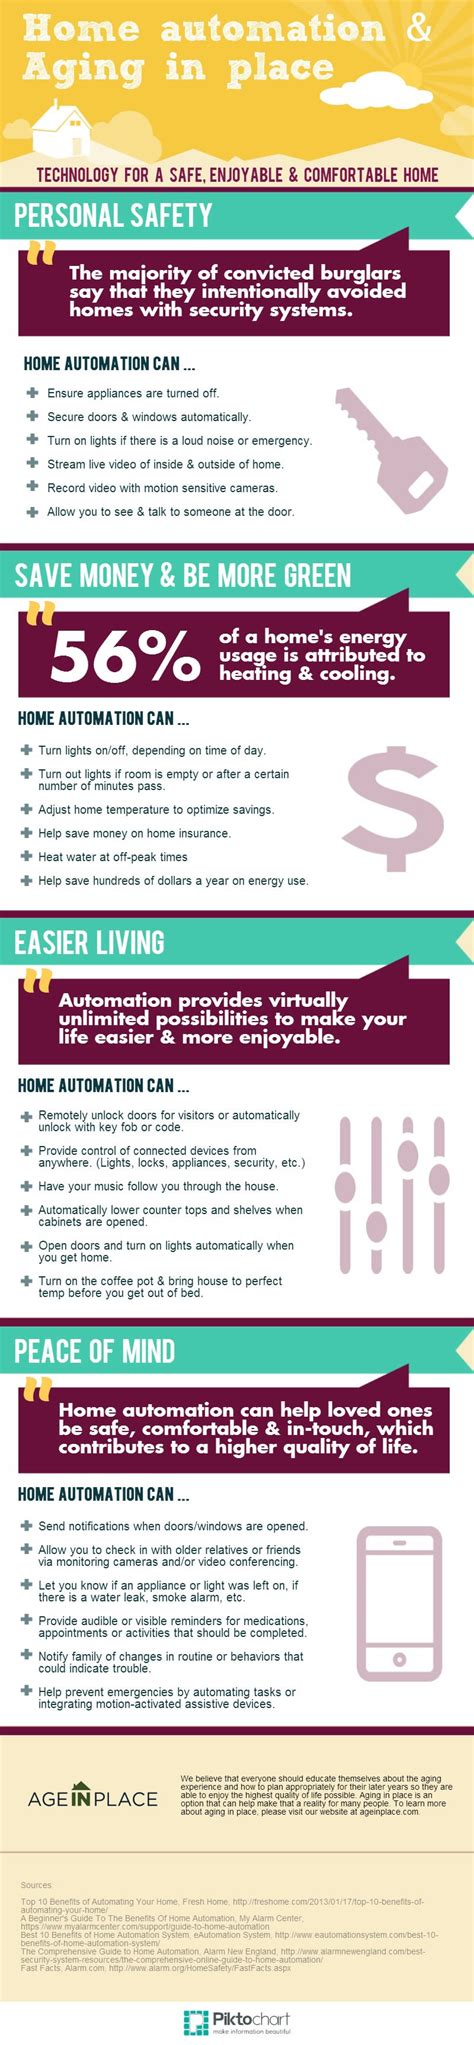 the benefits of home automation infographic